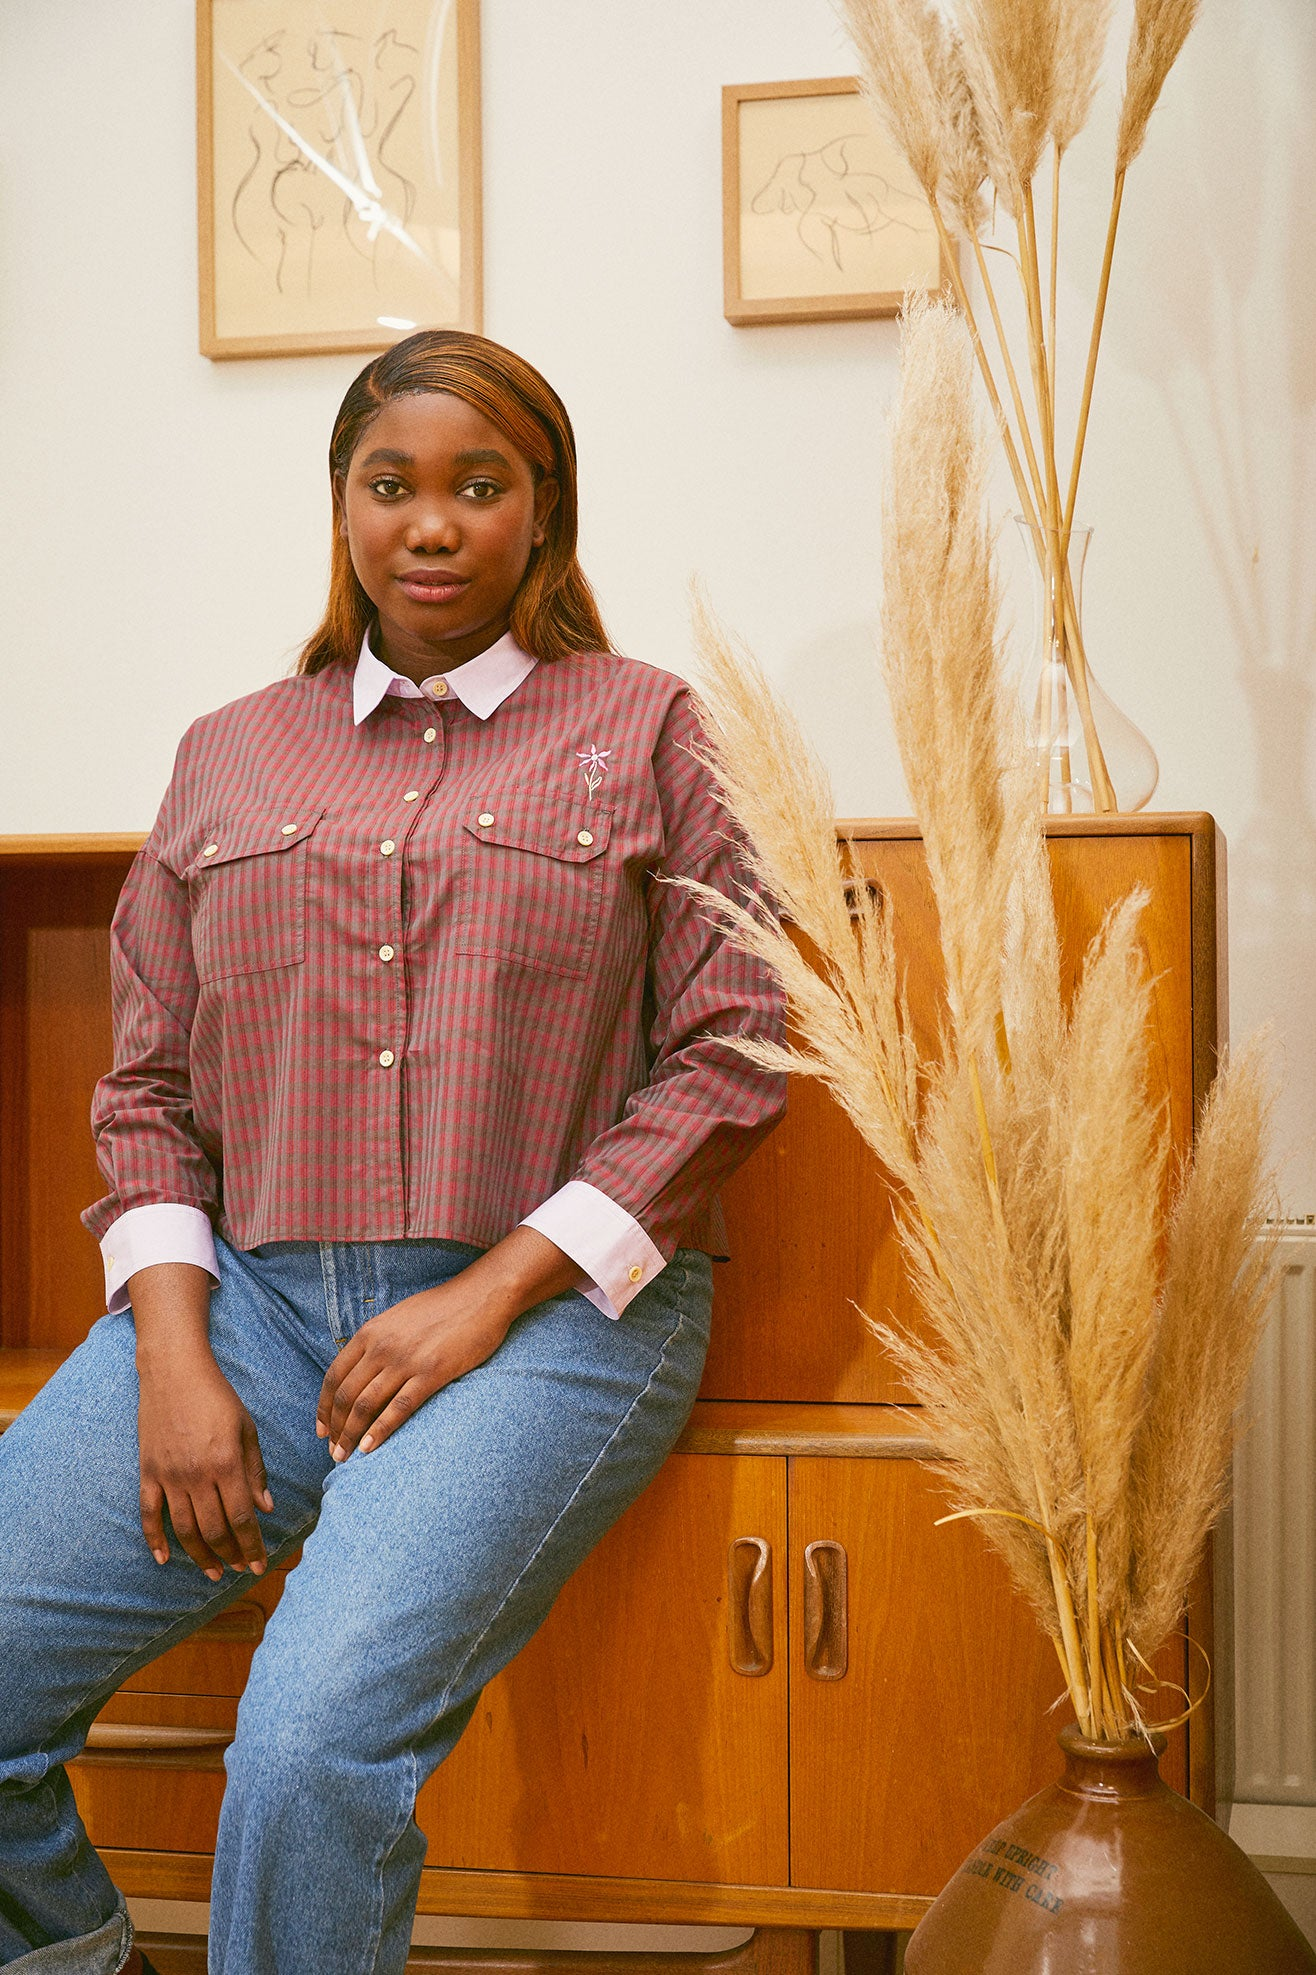 Saywood deadstock cotton Jules Utility Shirt in red check worn with jeans by model leaning against a mid century cupboard unit, with pampas grass  in a vintage vase to the right